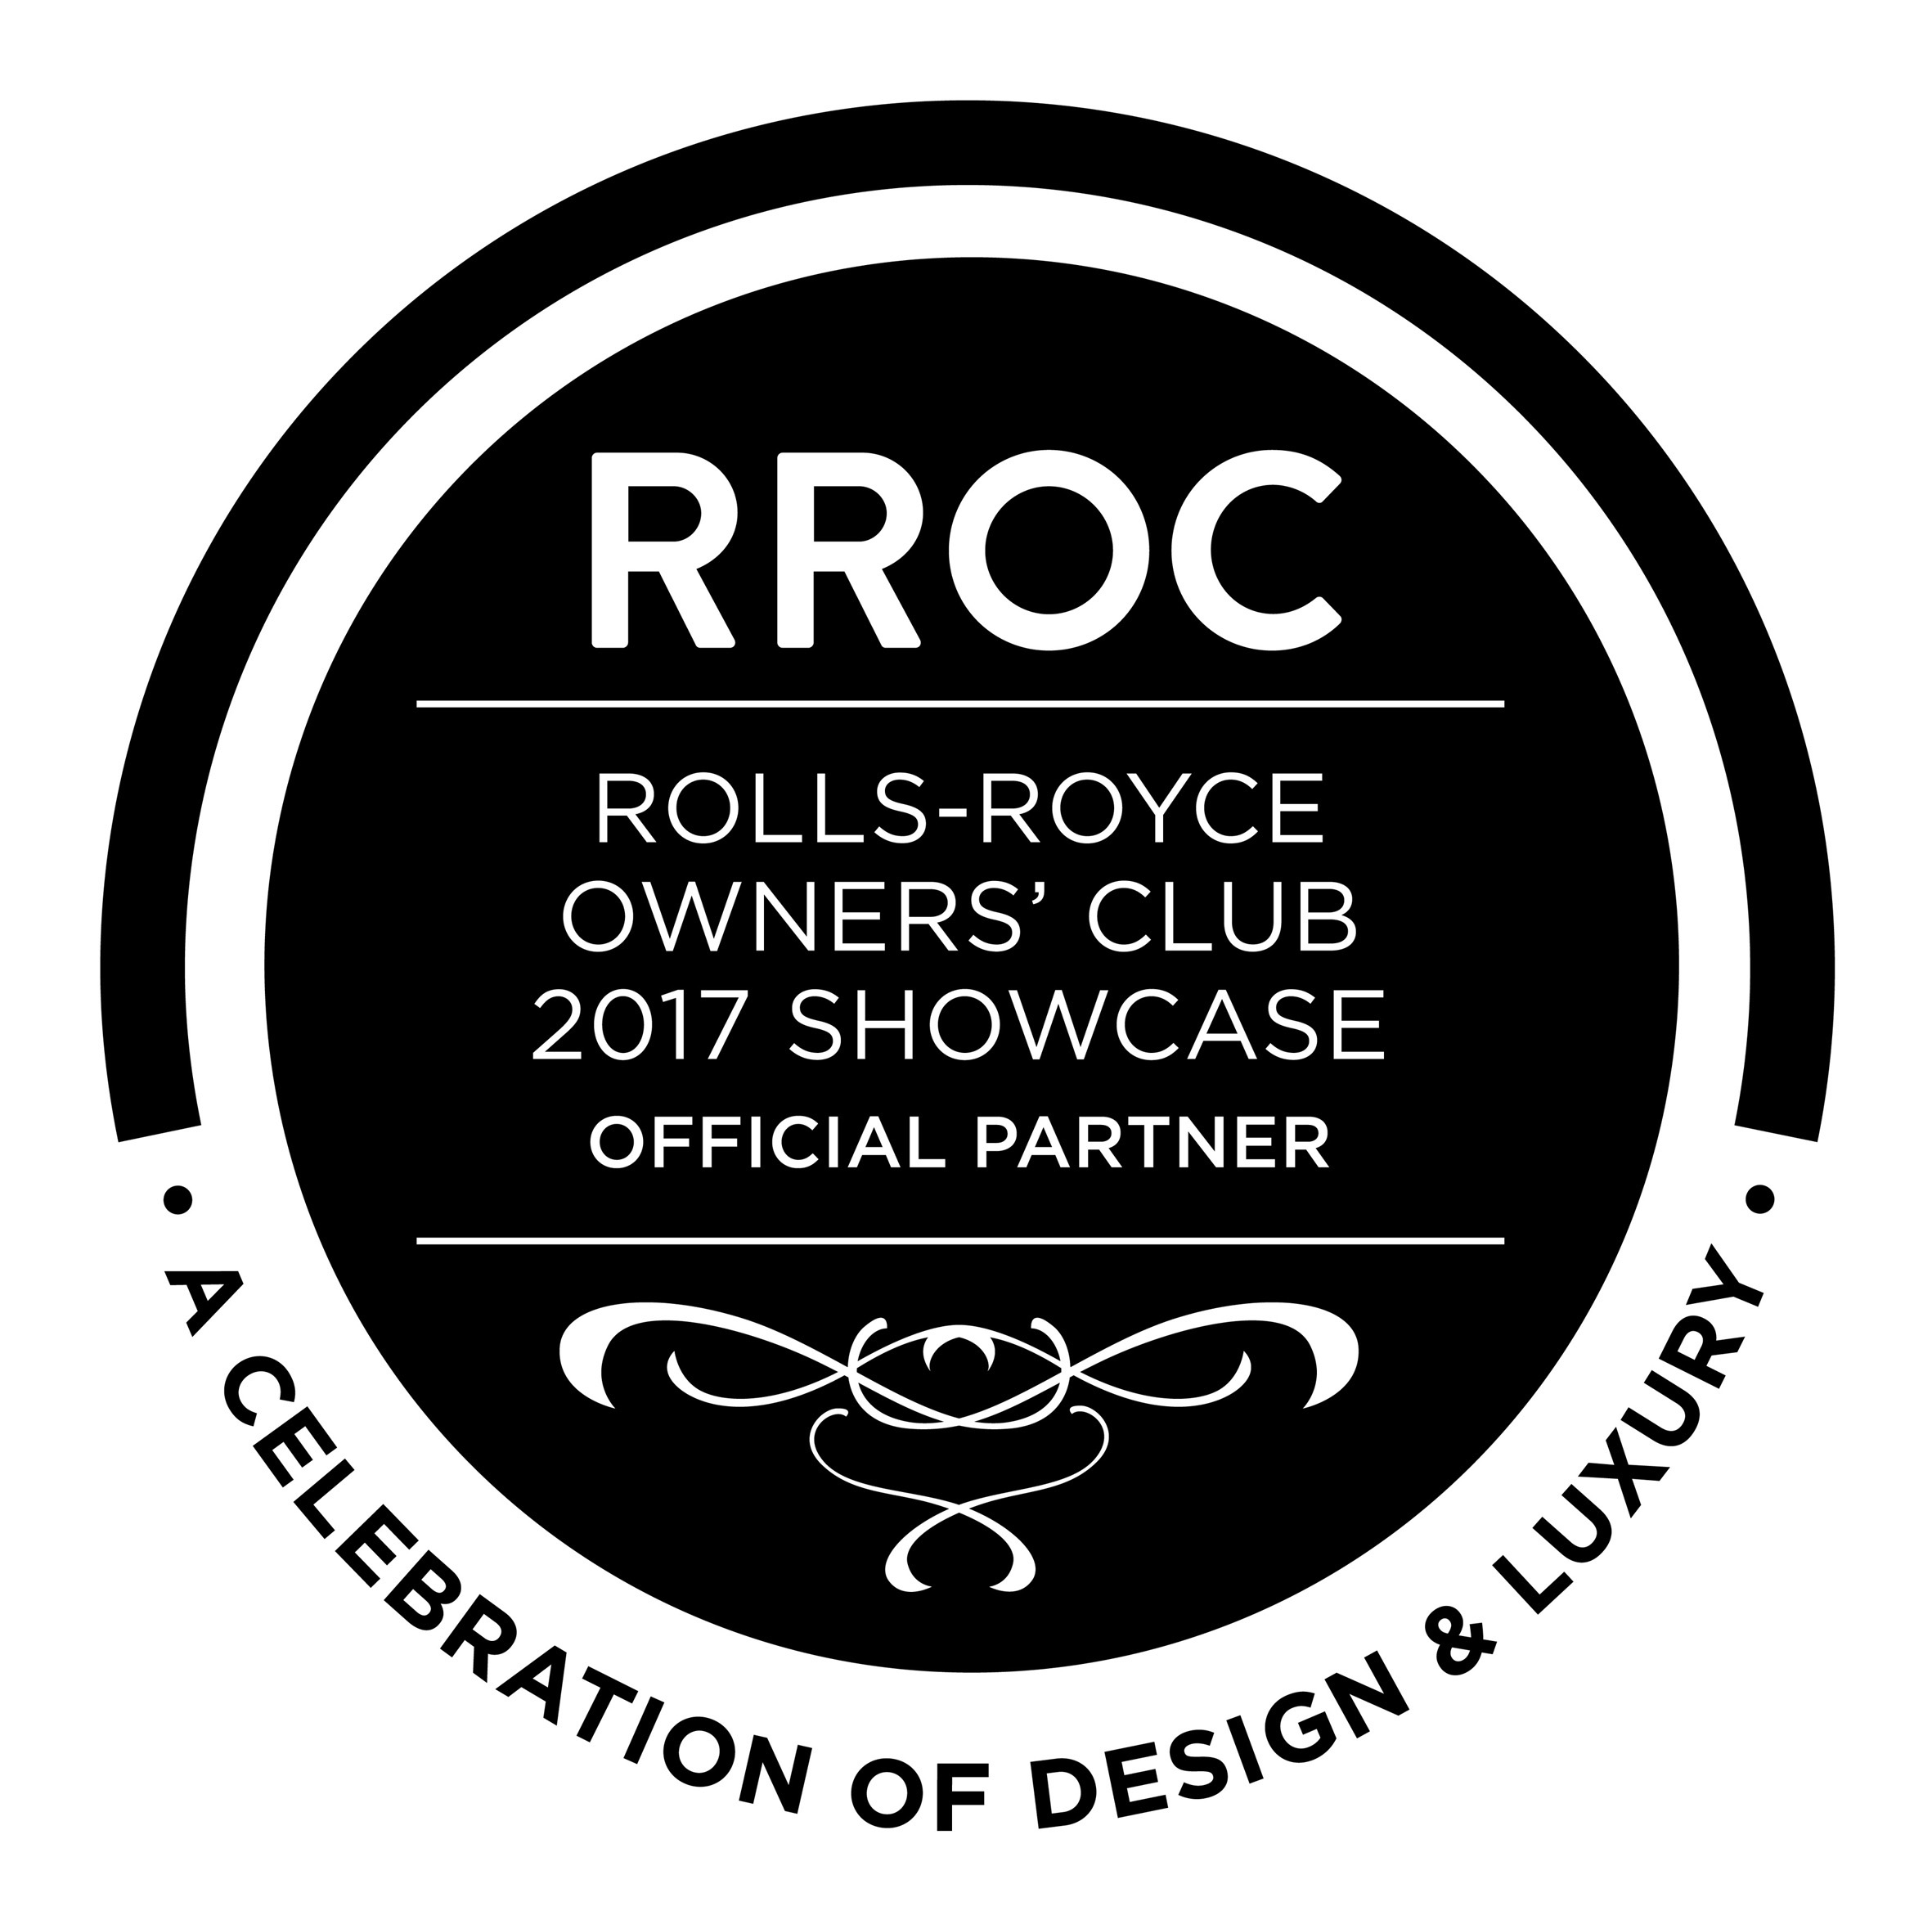 Mason-Kay Is A Company Featured In The Rolls-Royce Owner Club of America Publication 'Strive for Perfection'